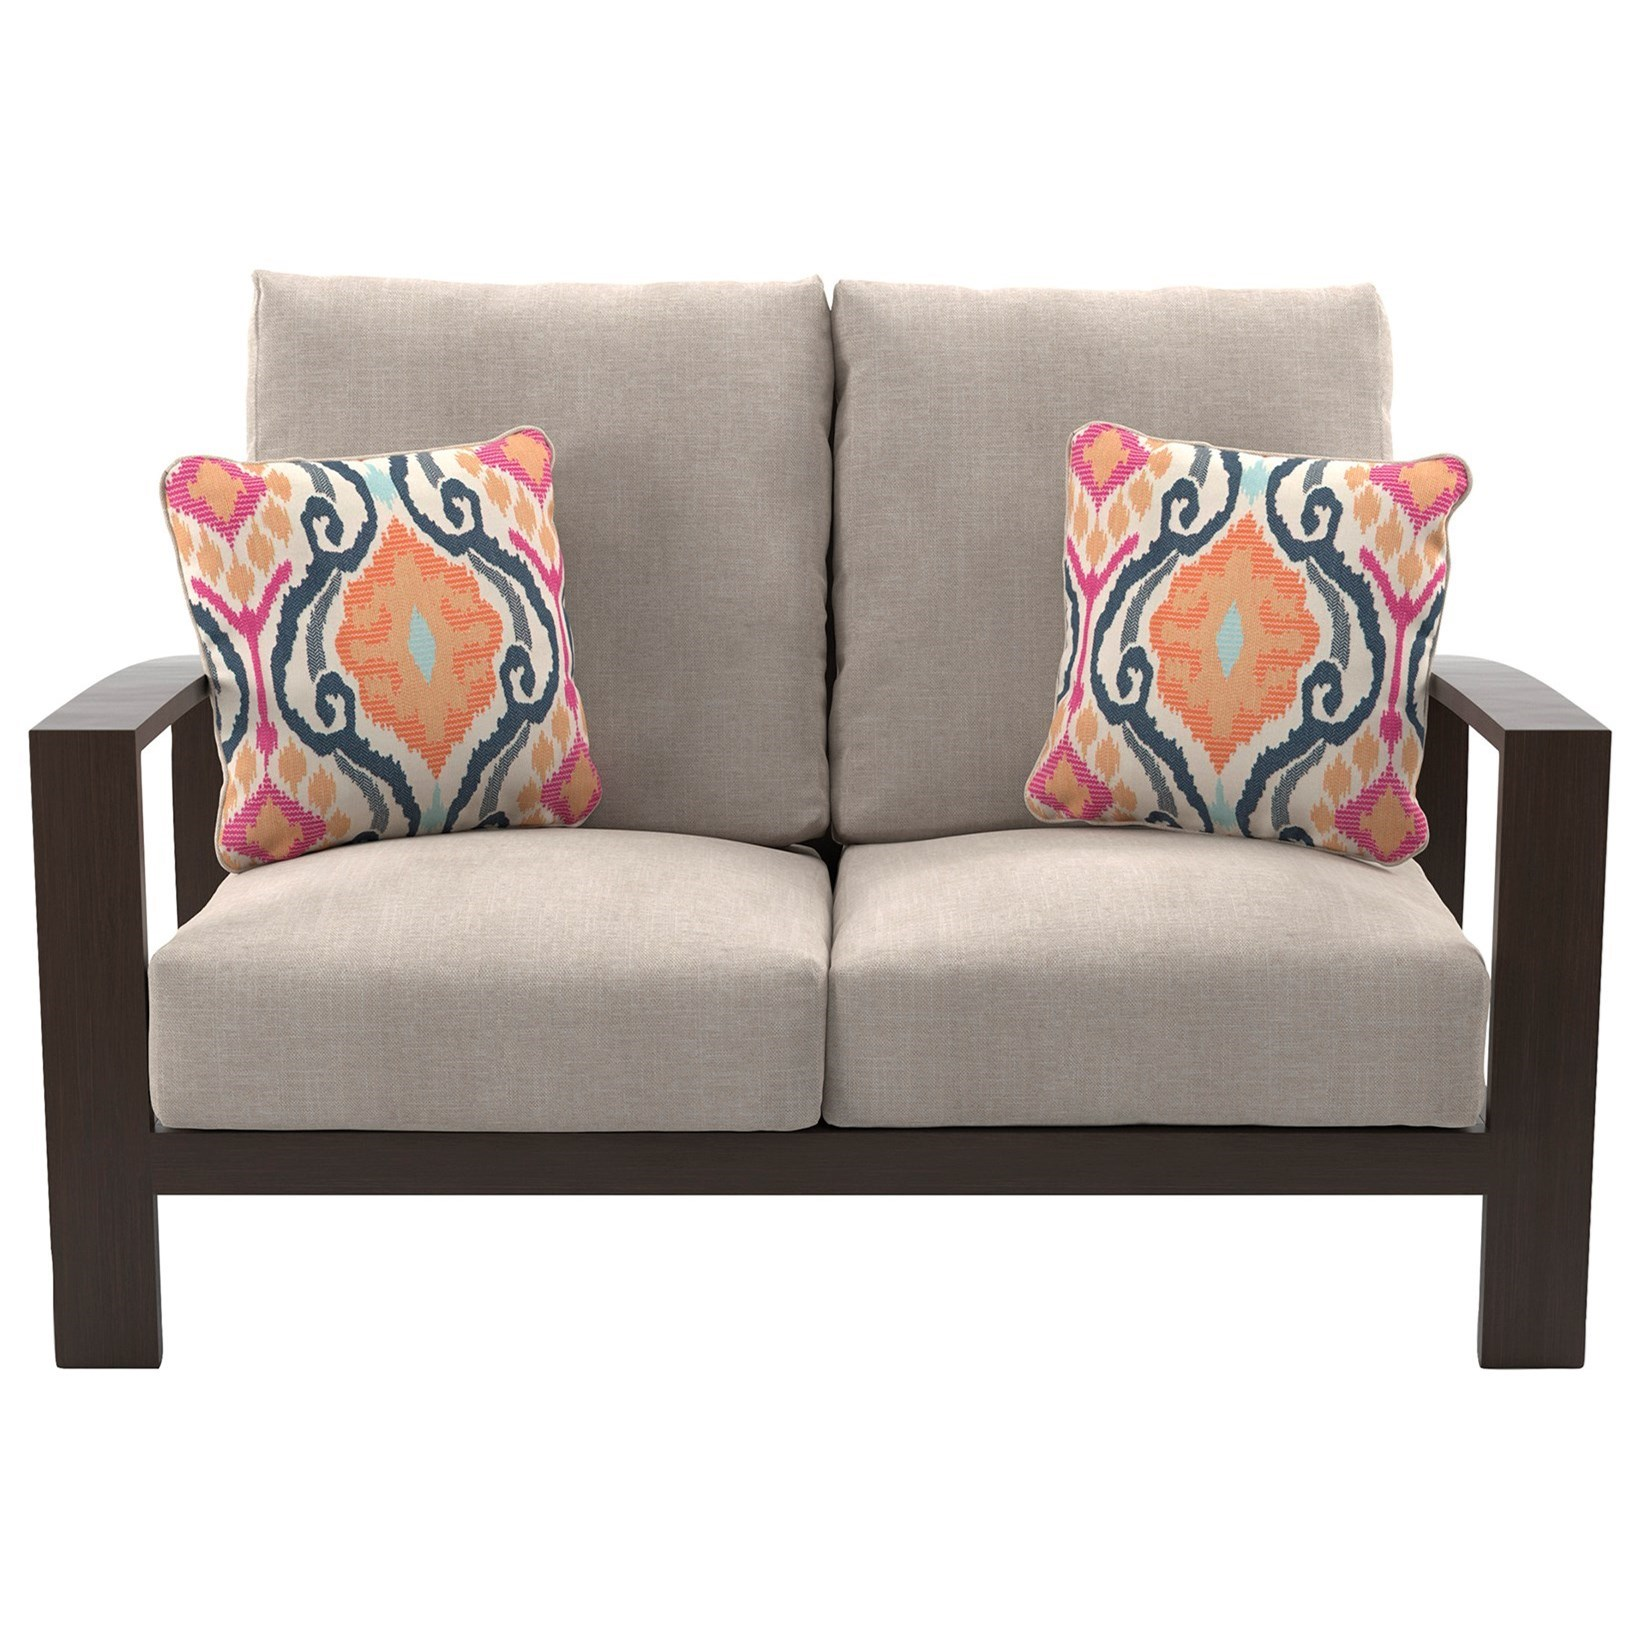 Signature Design by Ashley Cordova Reef Loveseat with Cushion - Item Number: P645-835